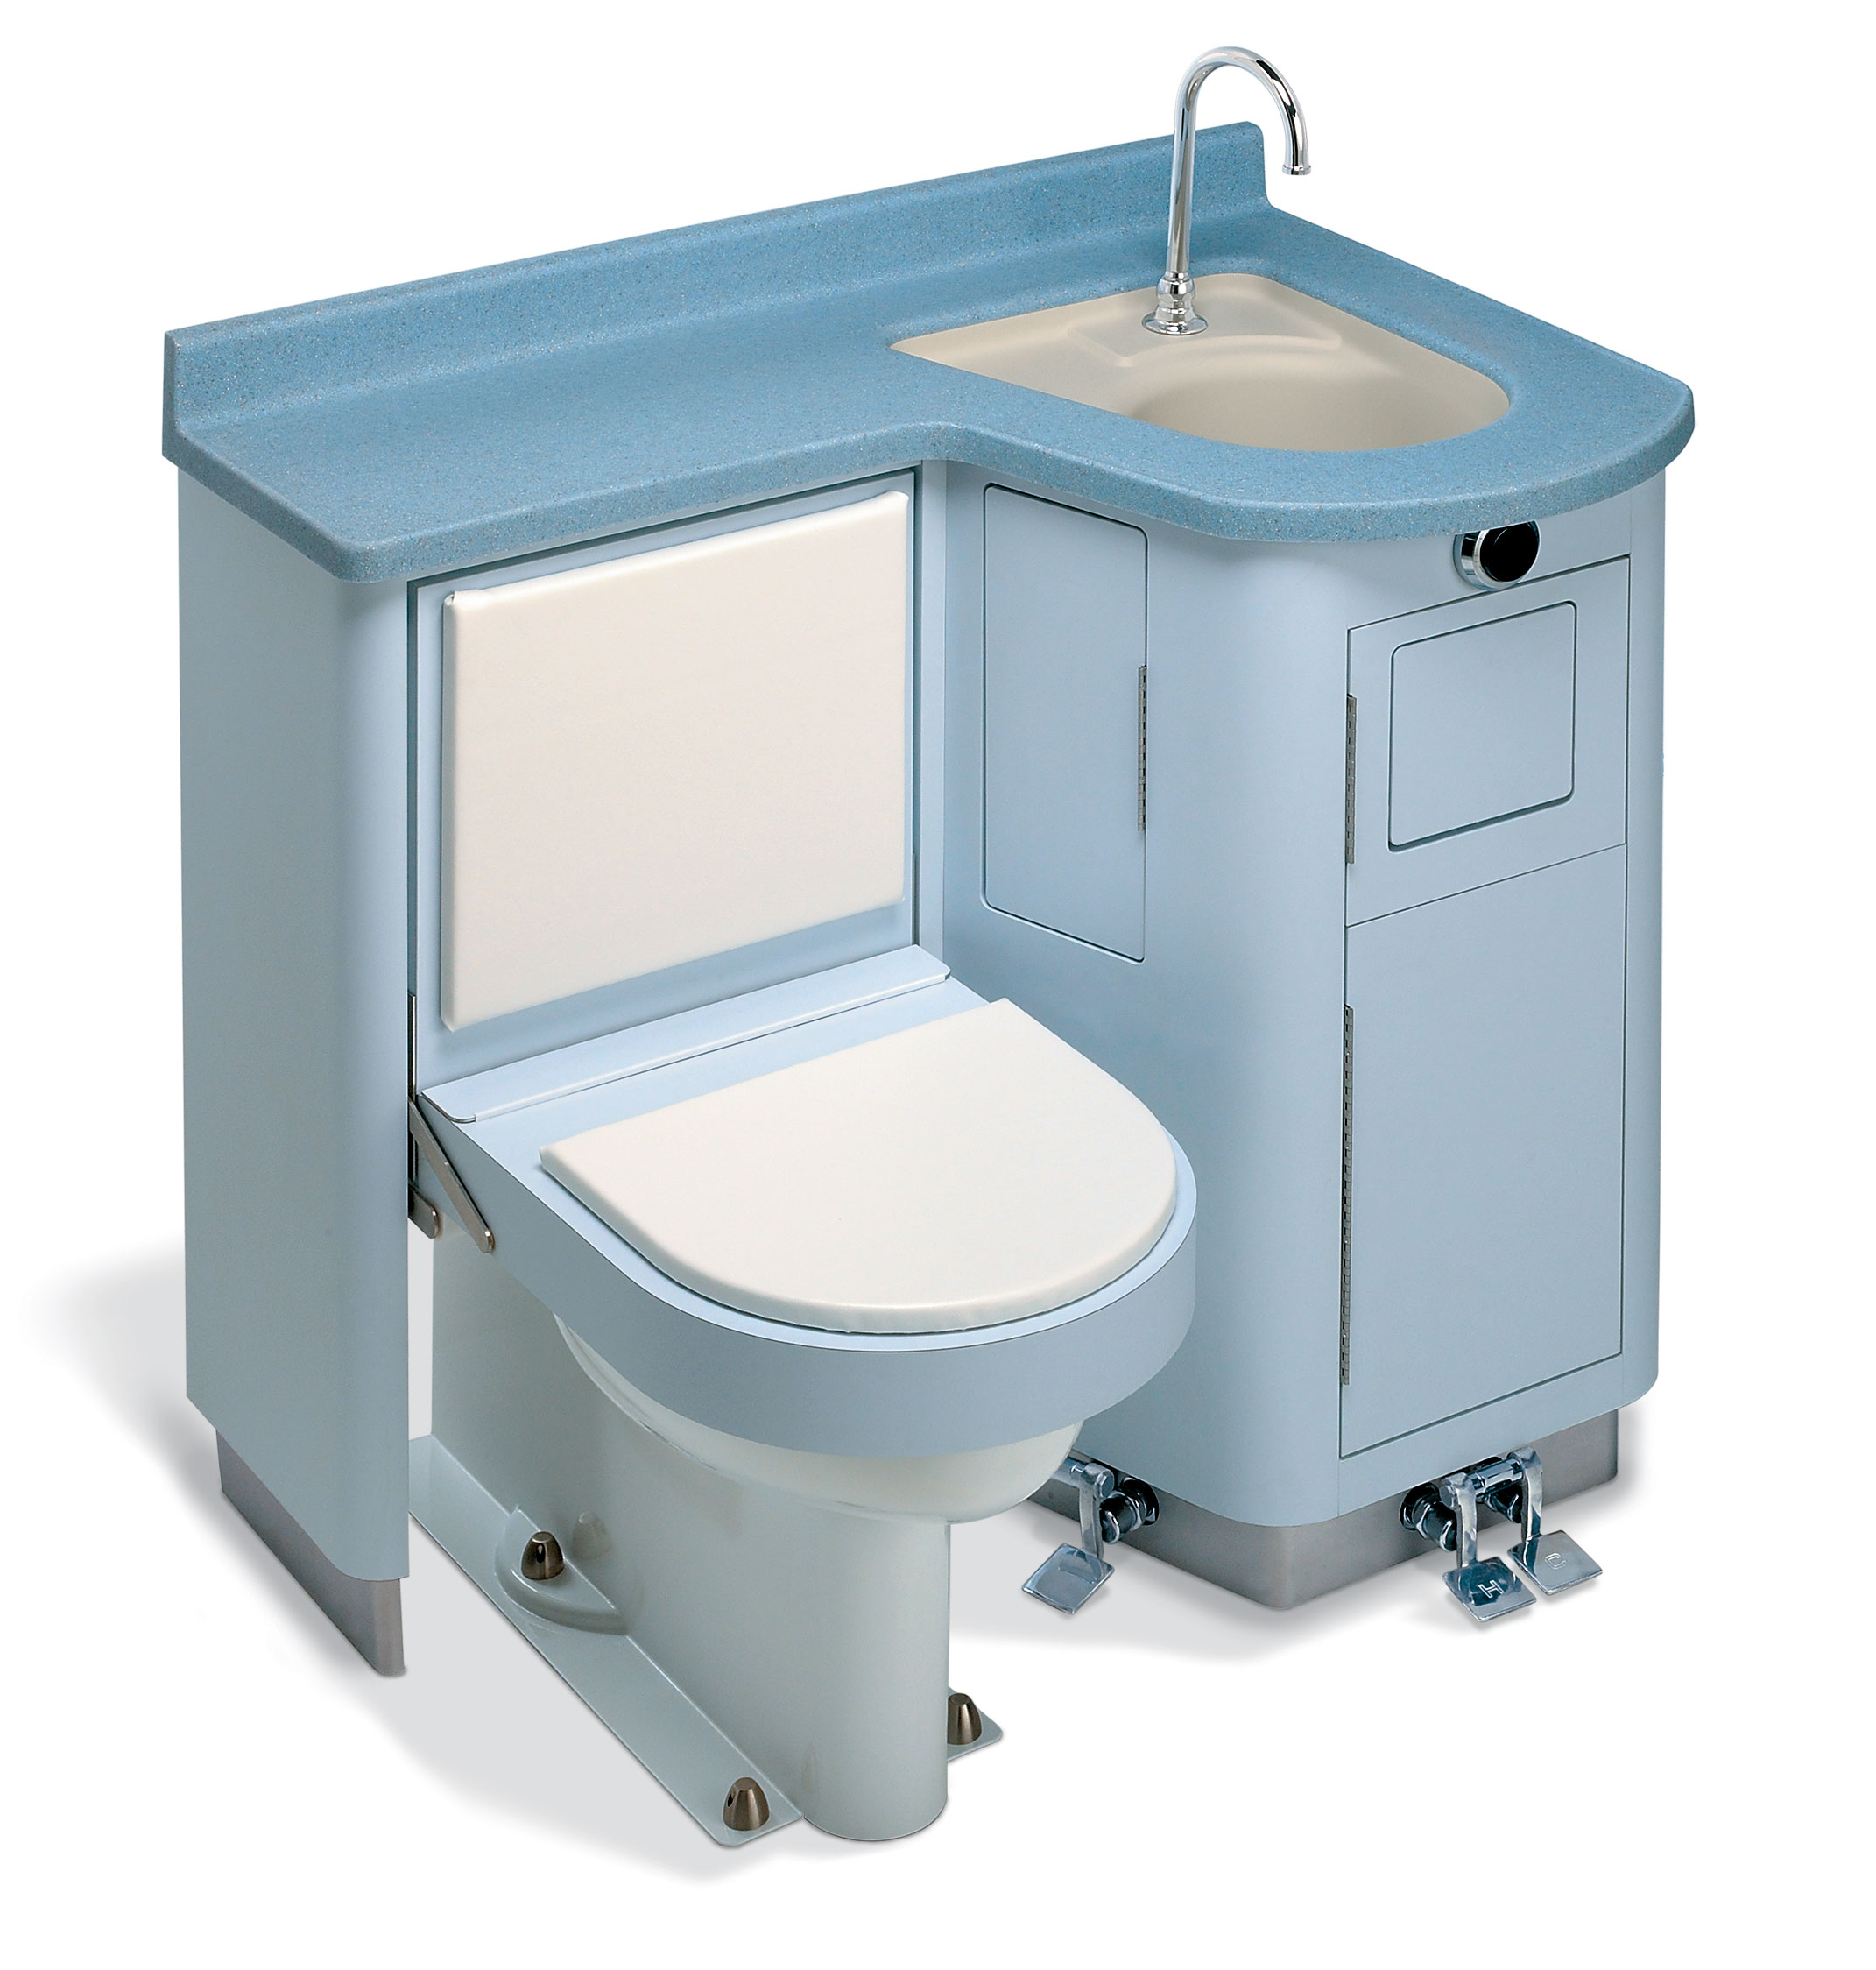 Lavatory Fixed Water Closet Bed Pan Washer Comby